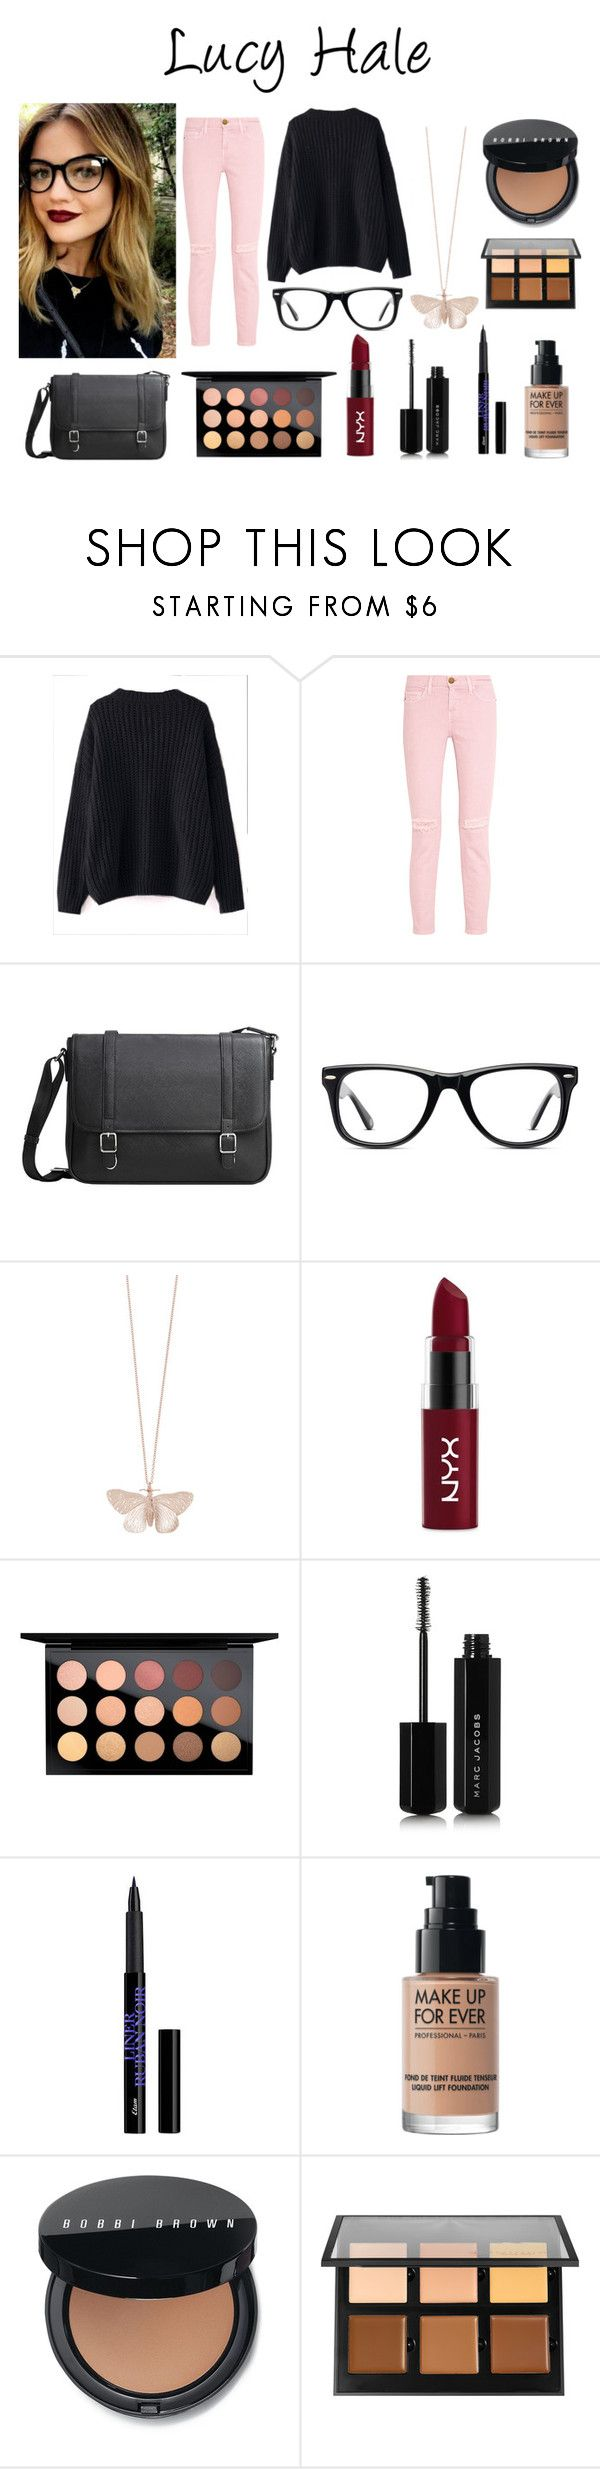 """""""Lucy Hale"""" by netflixqueen04 ❤ liked on Polyvore featuring WithChic, Current/Elliott, MANGO, Muse, Alex Monroe, NYX, MAC Cosmetics, Marc Jacobs, MAKE UP FOR EVER and Bobbi Brown Cosmetics"""